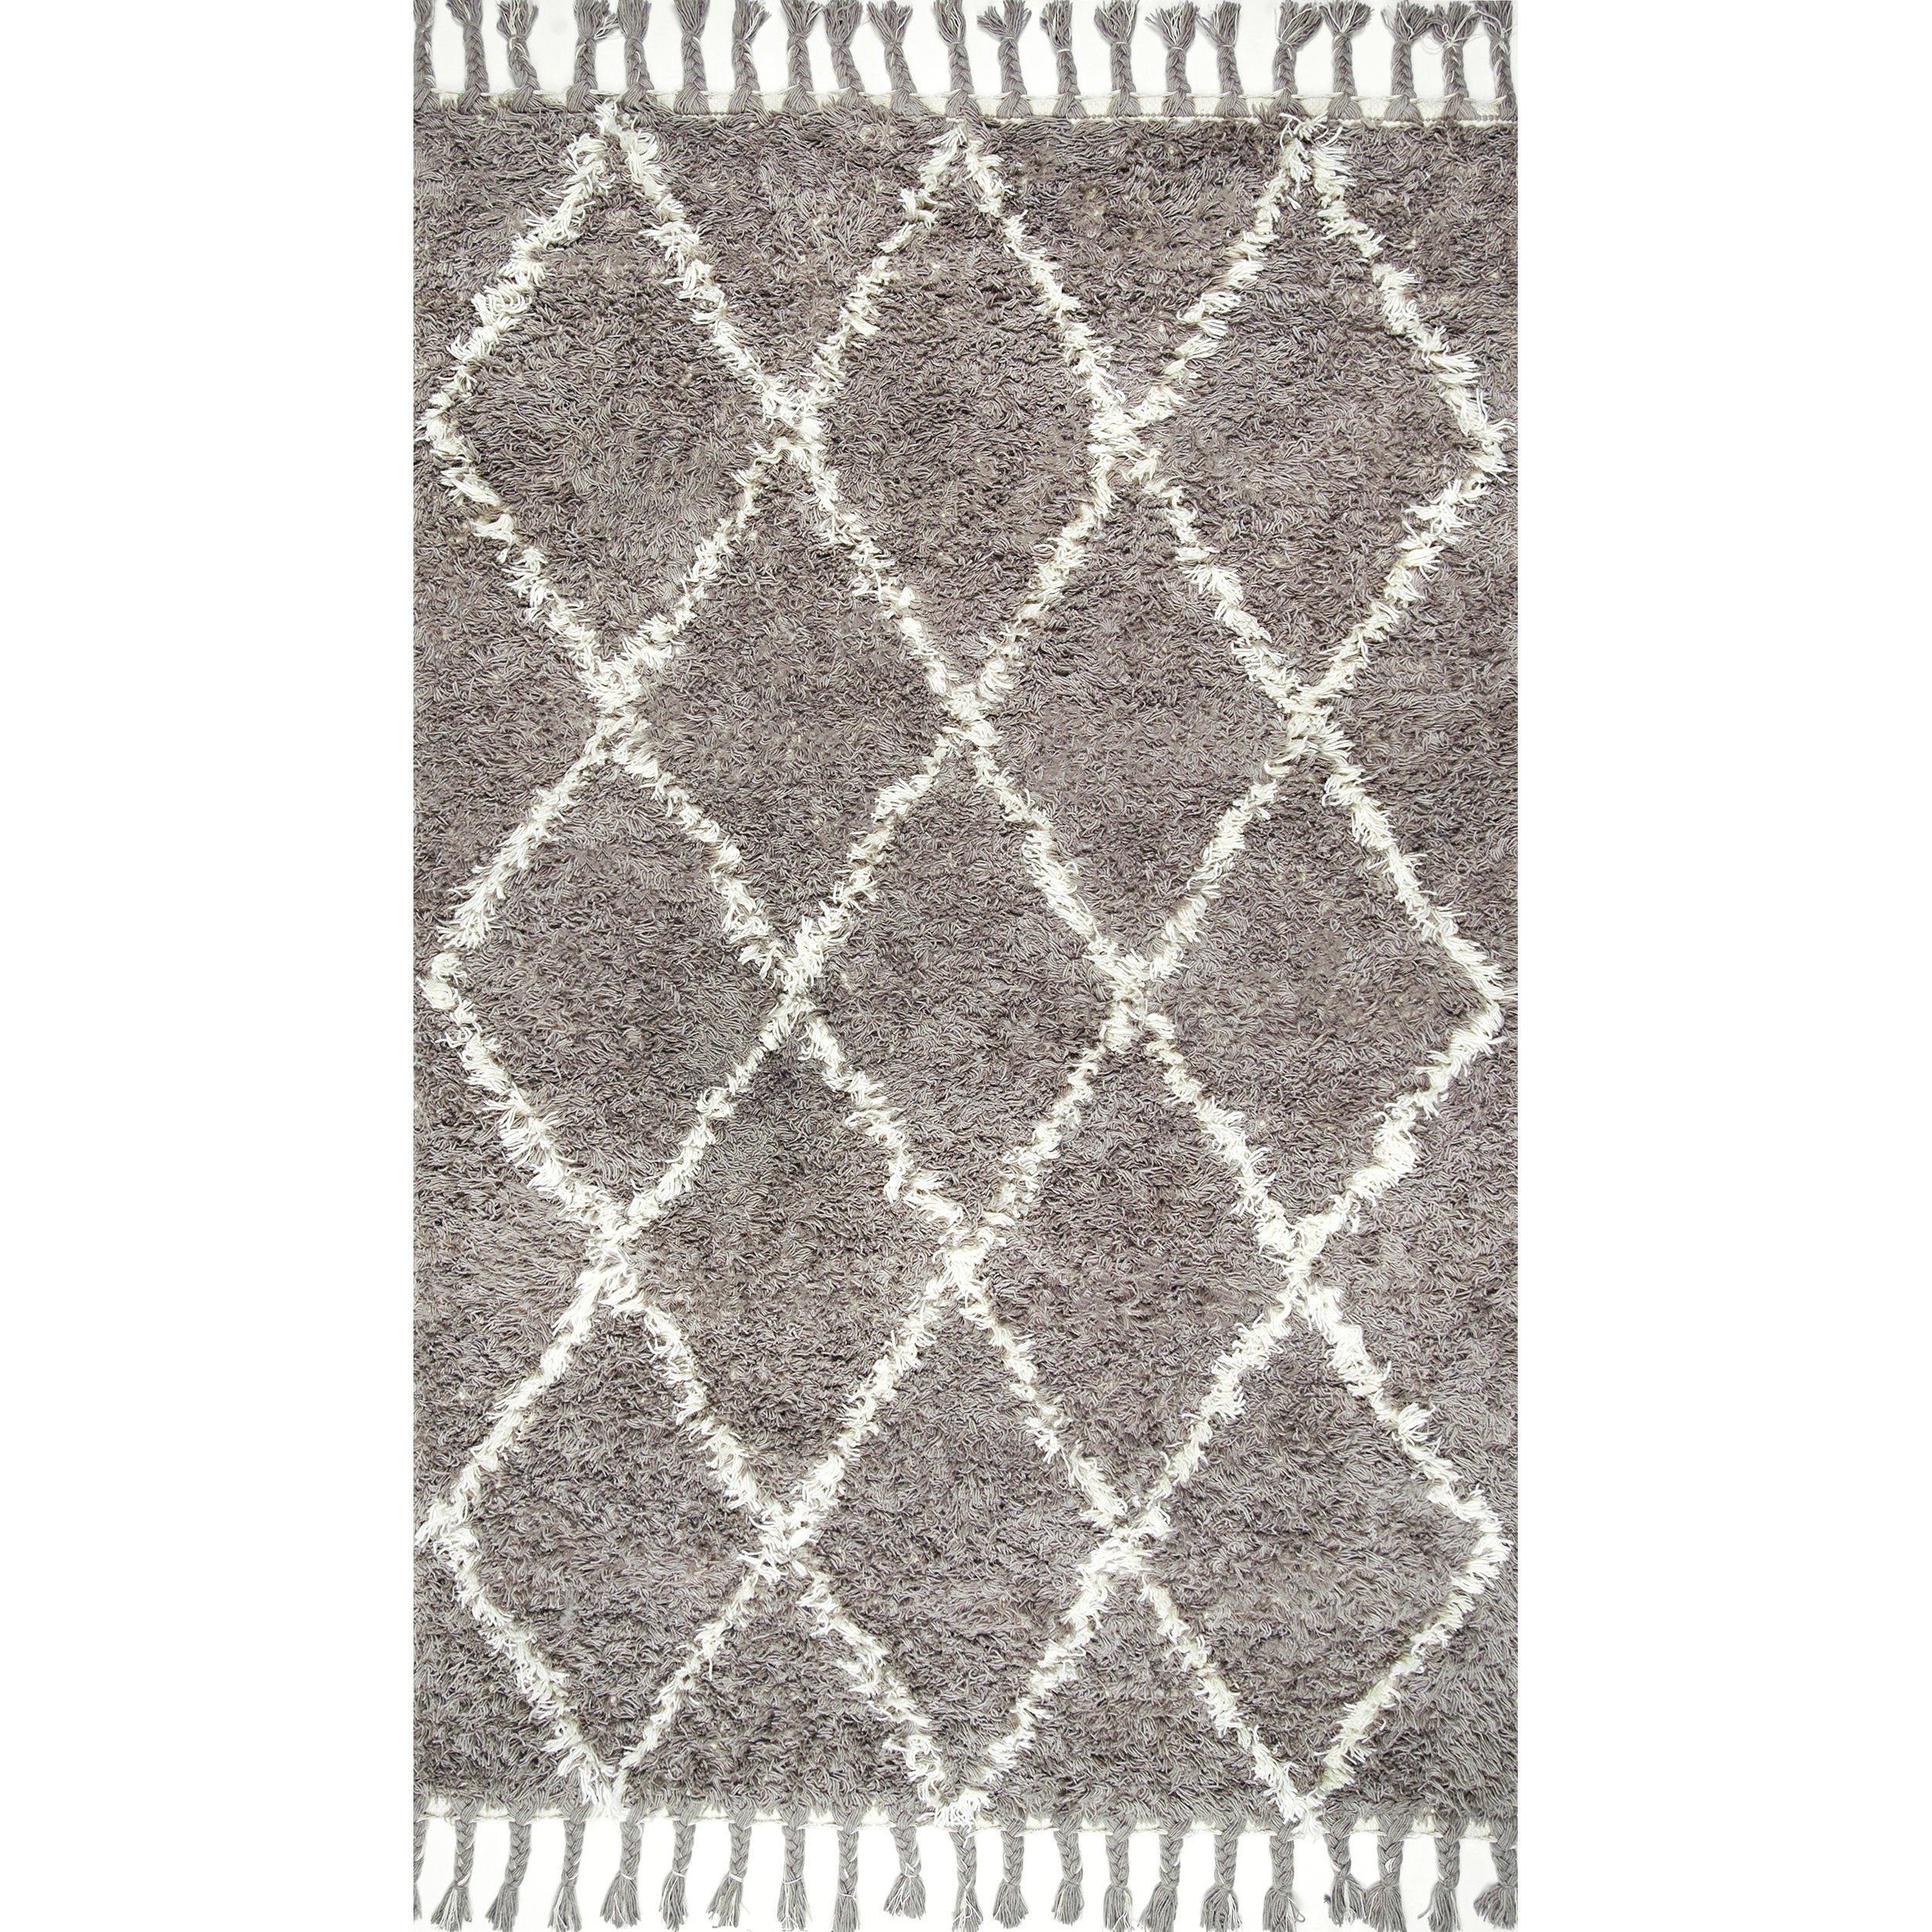 Oliver James Zoe Hand Knotted Wool Rug 5 X 8 Free Shipping Today 15179264